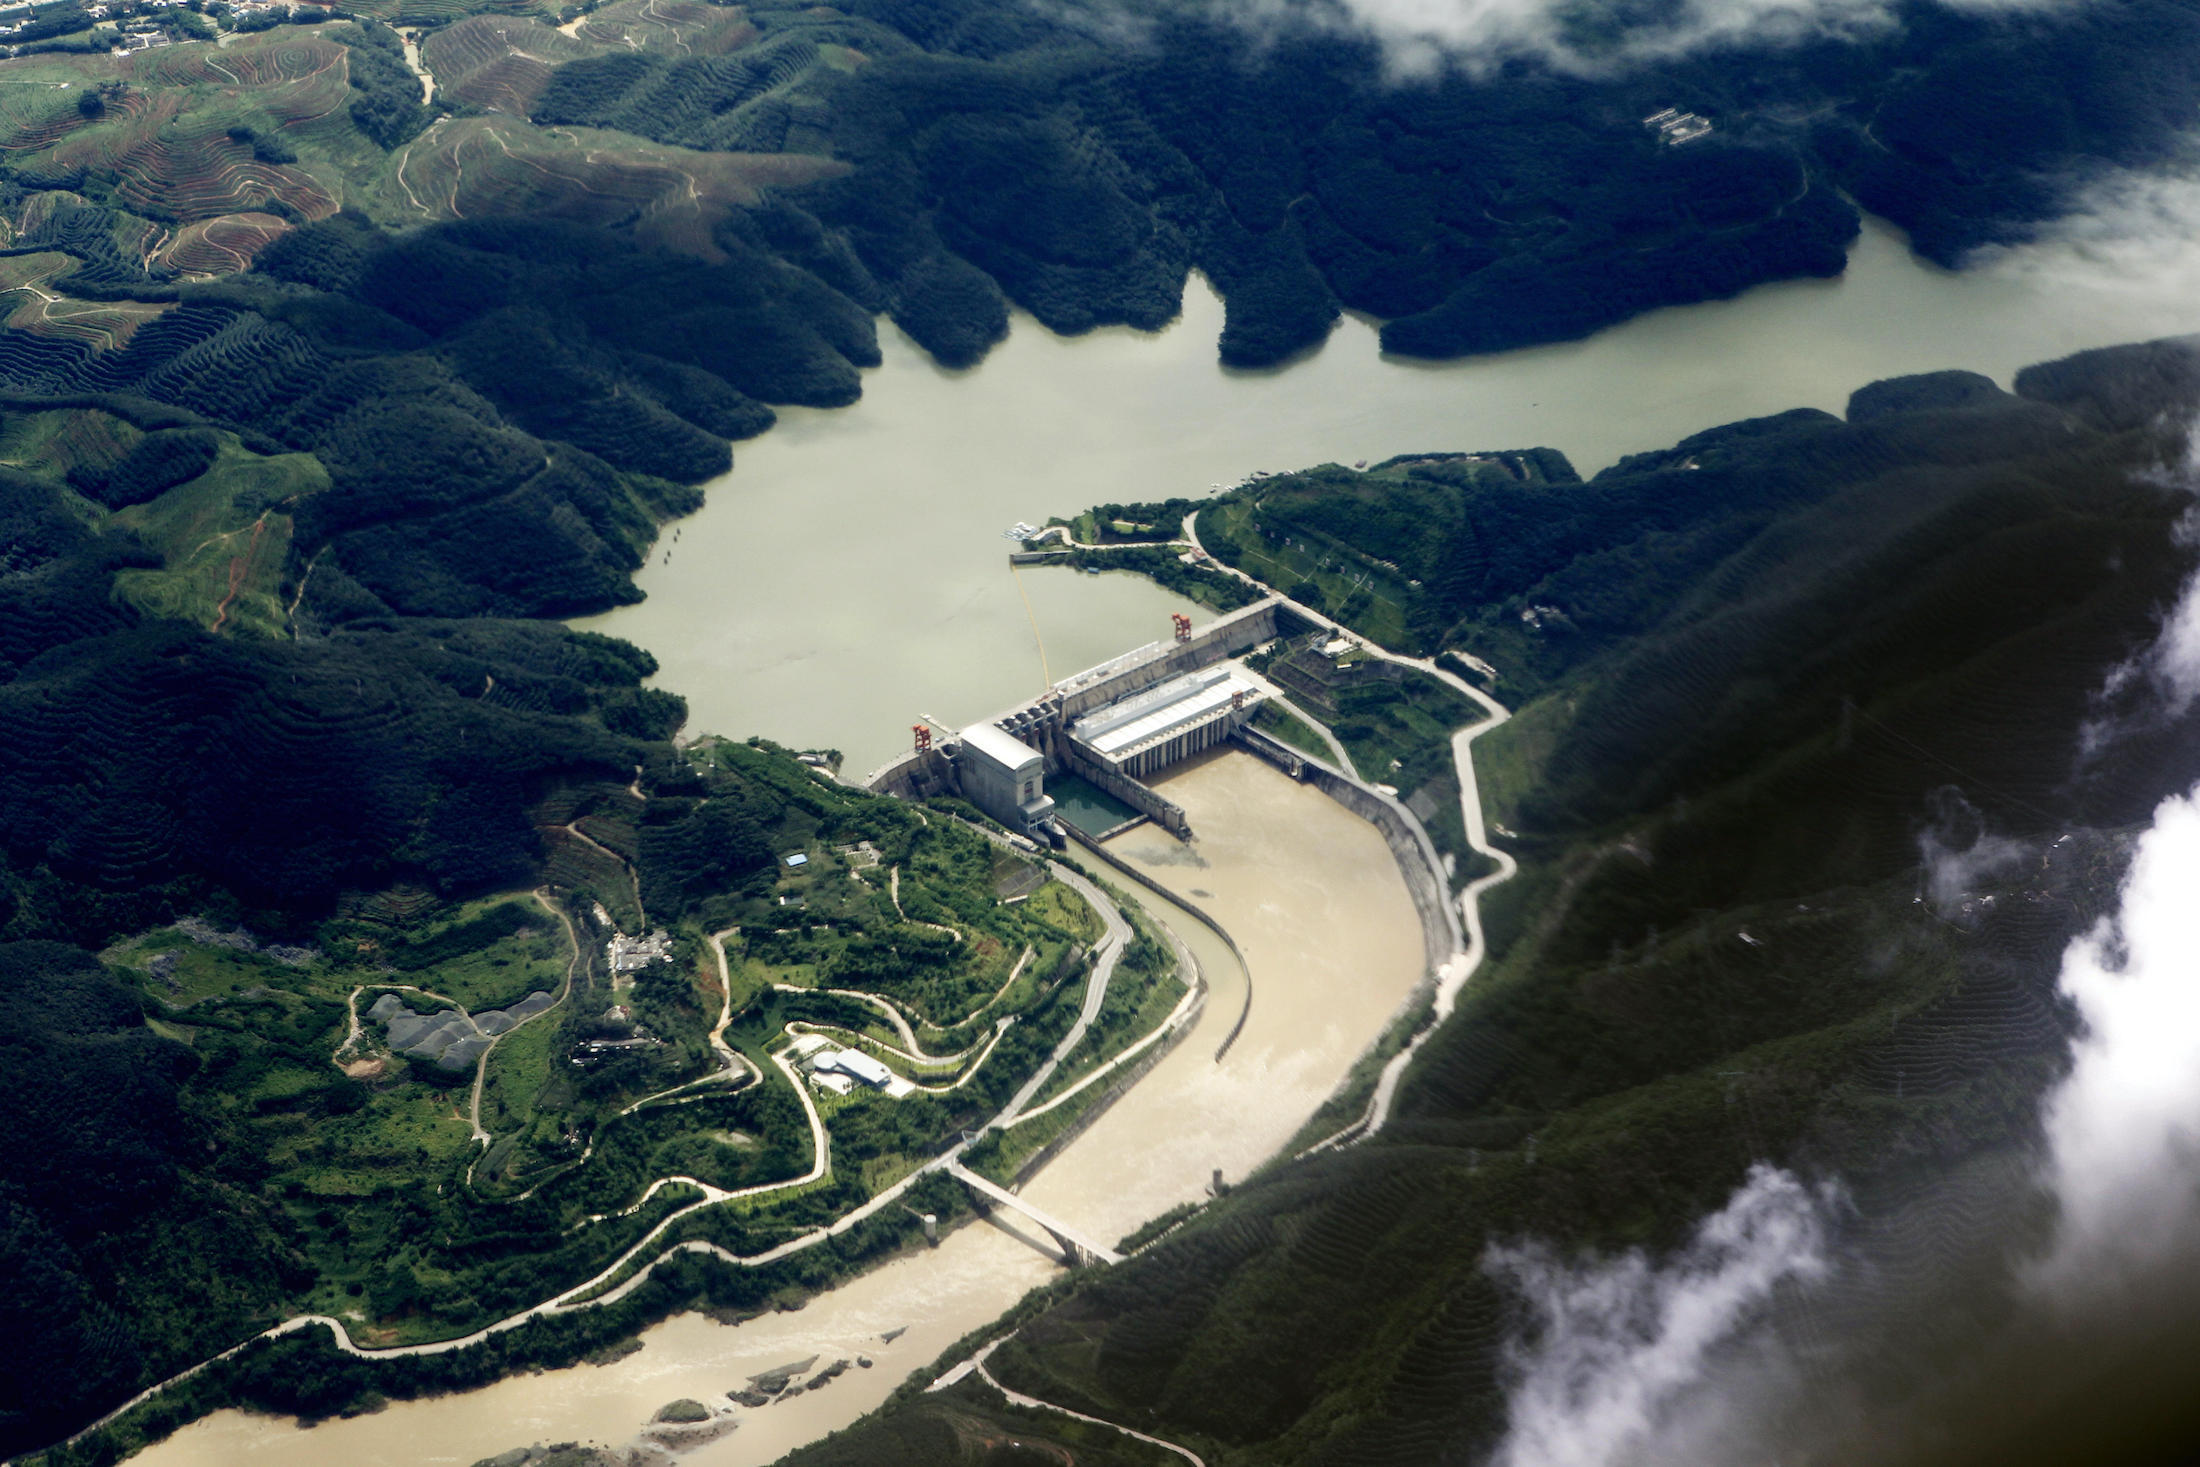 Aerial view of the dam at the Jinghong Hydropower Station, China